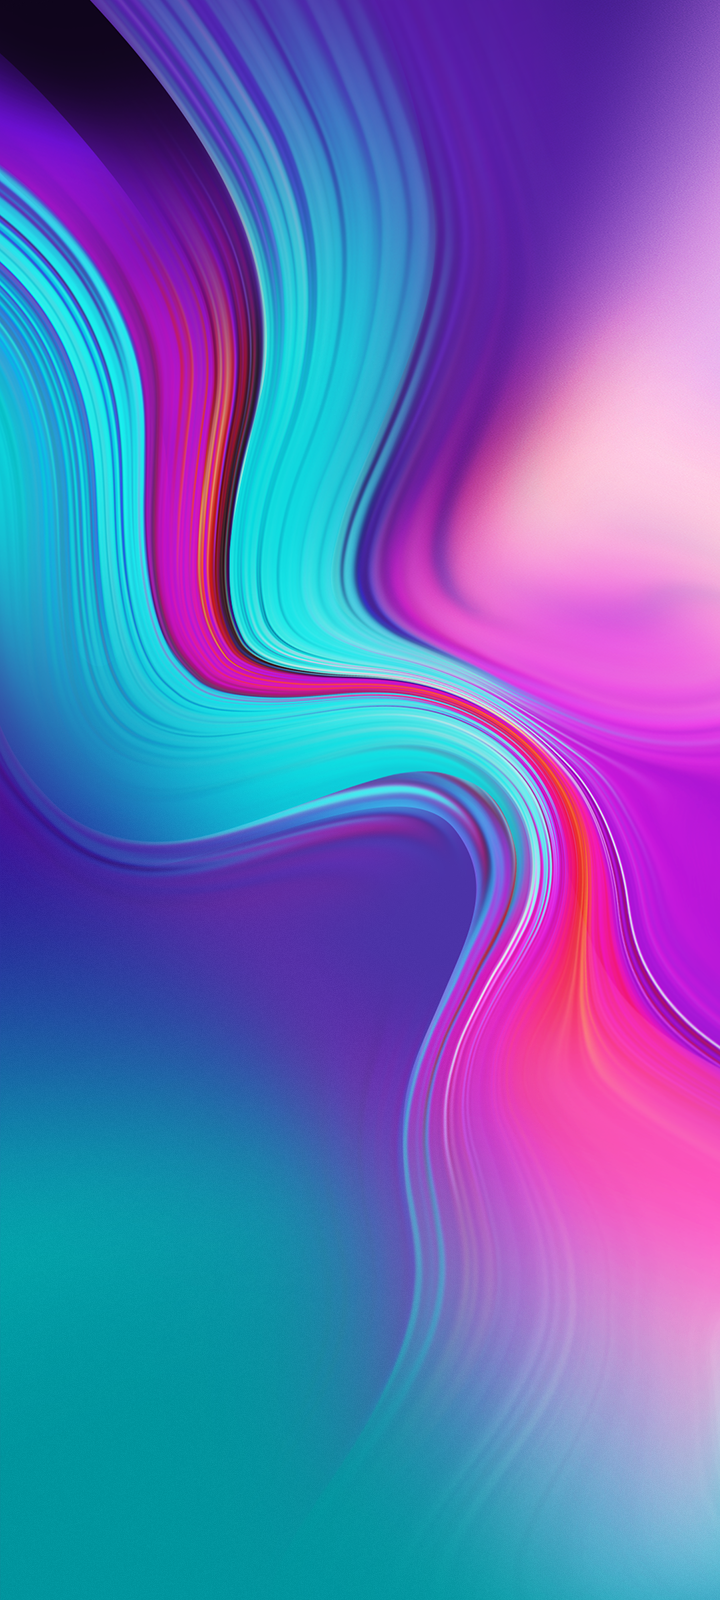 Infinix S5 Wallpaper Ytechb Exclusive S5 Wallpaper Oneplus Wallpapers Abstract Wallpaper Backgrounds